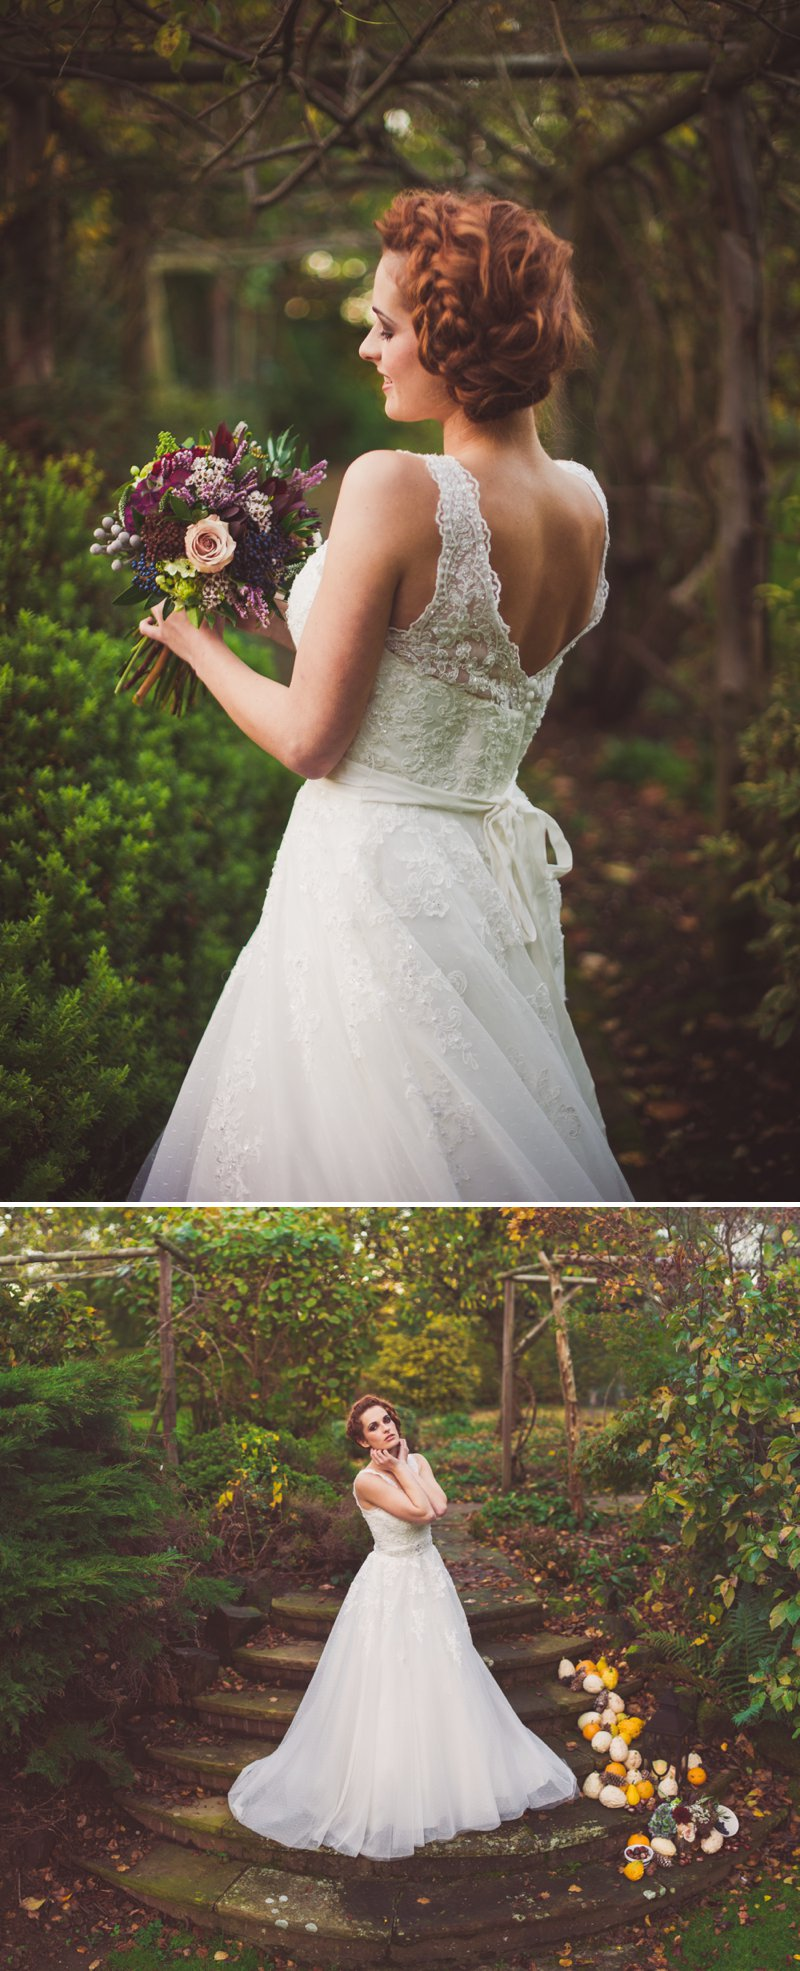 Autumn Fall Inspired Wedding Decor and Fashion Editorial by Rock My Wedding With Florals By Mrs Umbels, Make-up By Claire Salter Photographed By Rebekah J Murray._0014